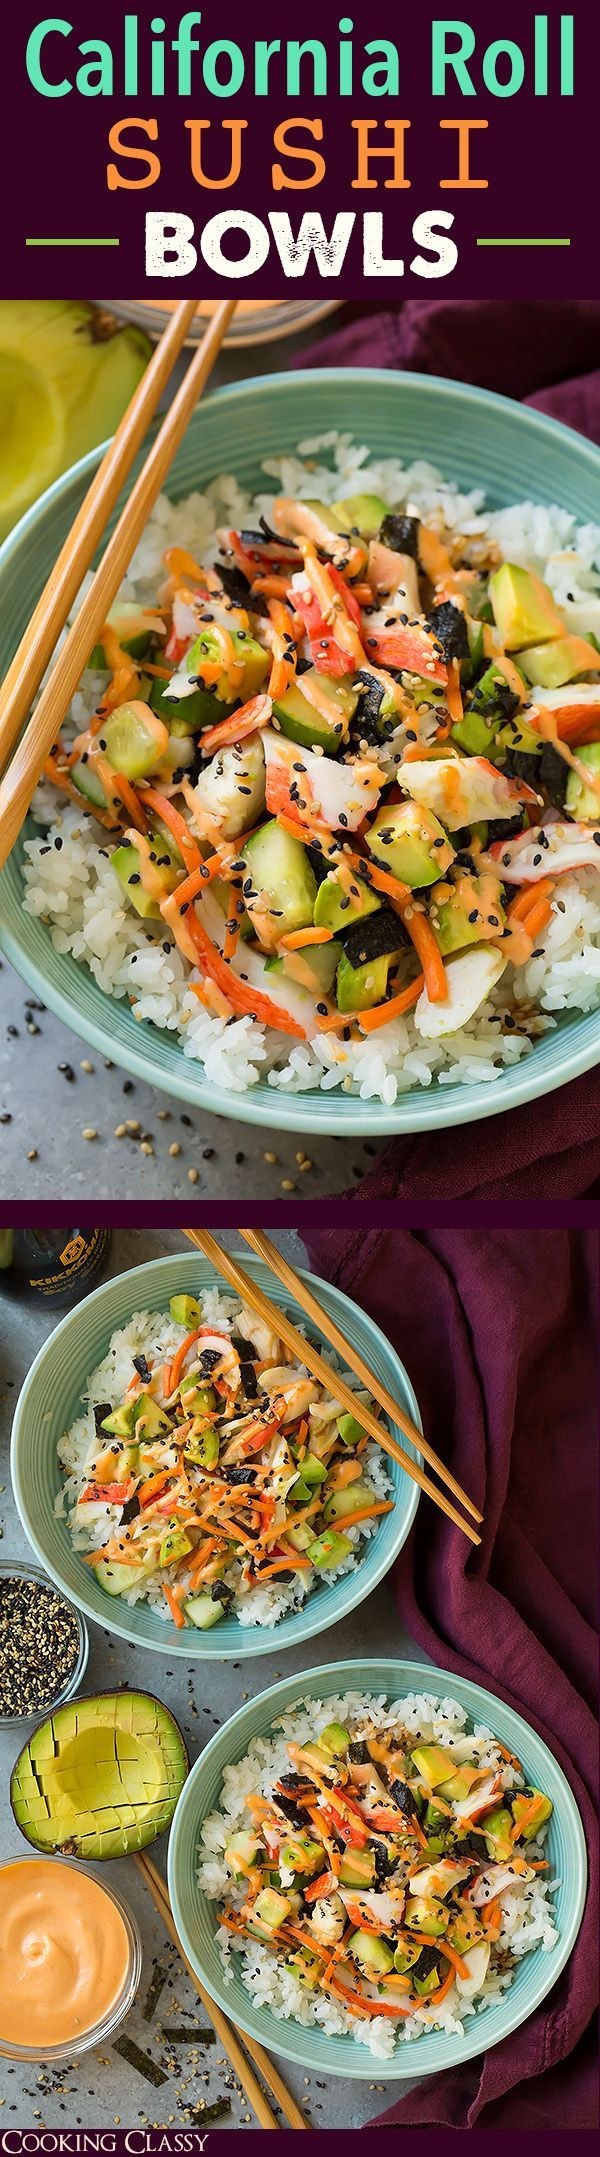 awesome California Roll Sushi Bowls - quicker and easier than traditional sushi yet equa...byDiMagio